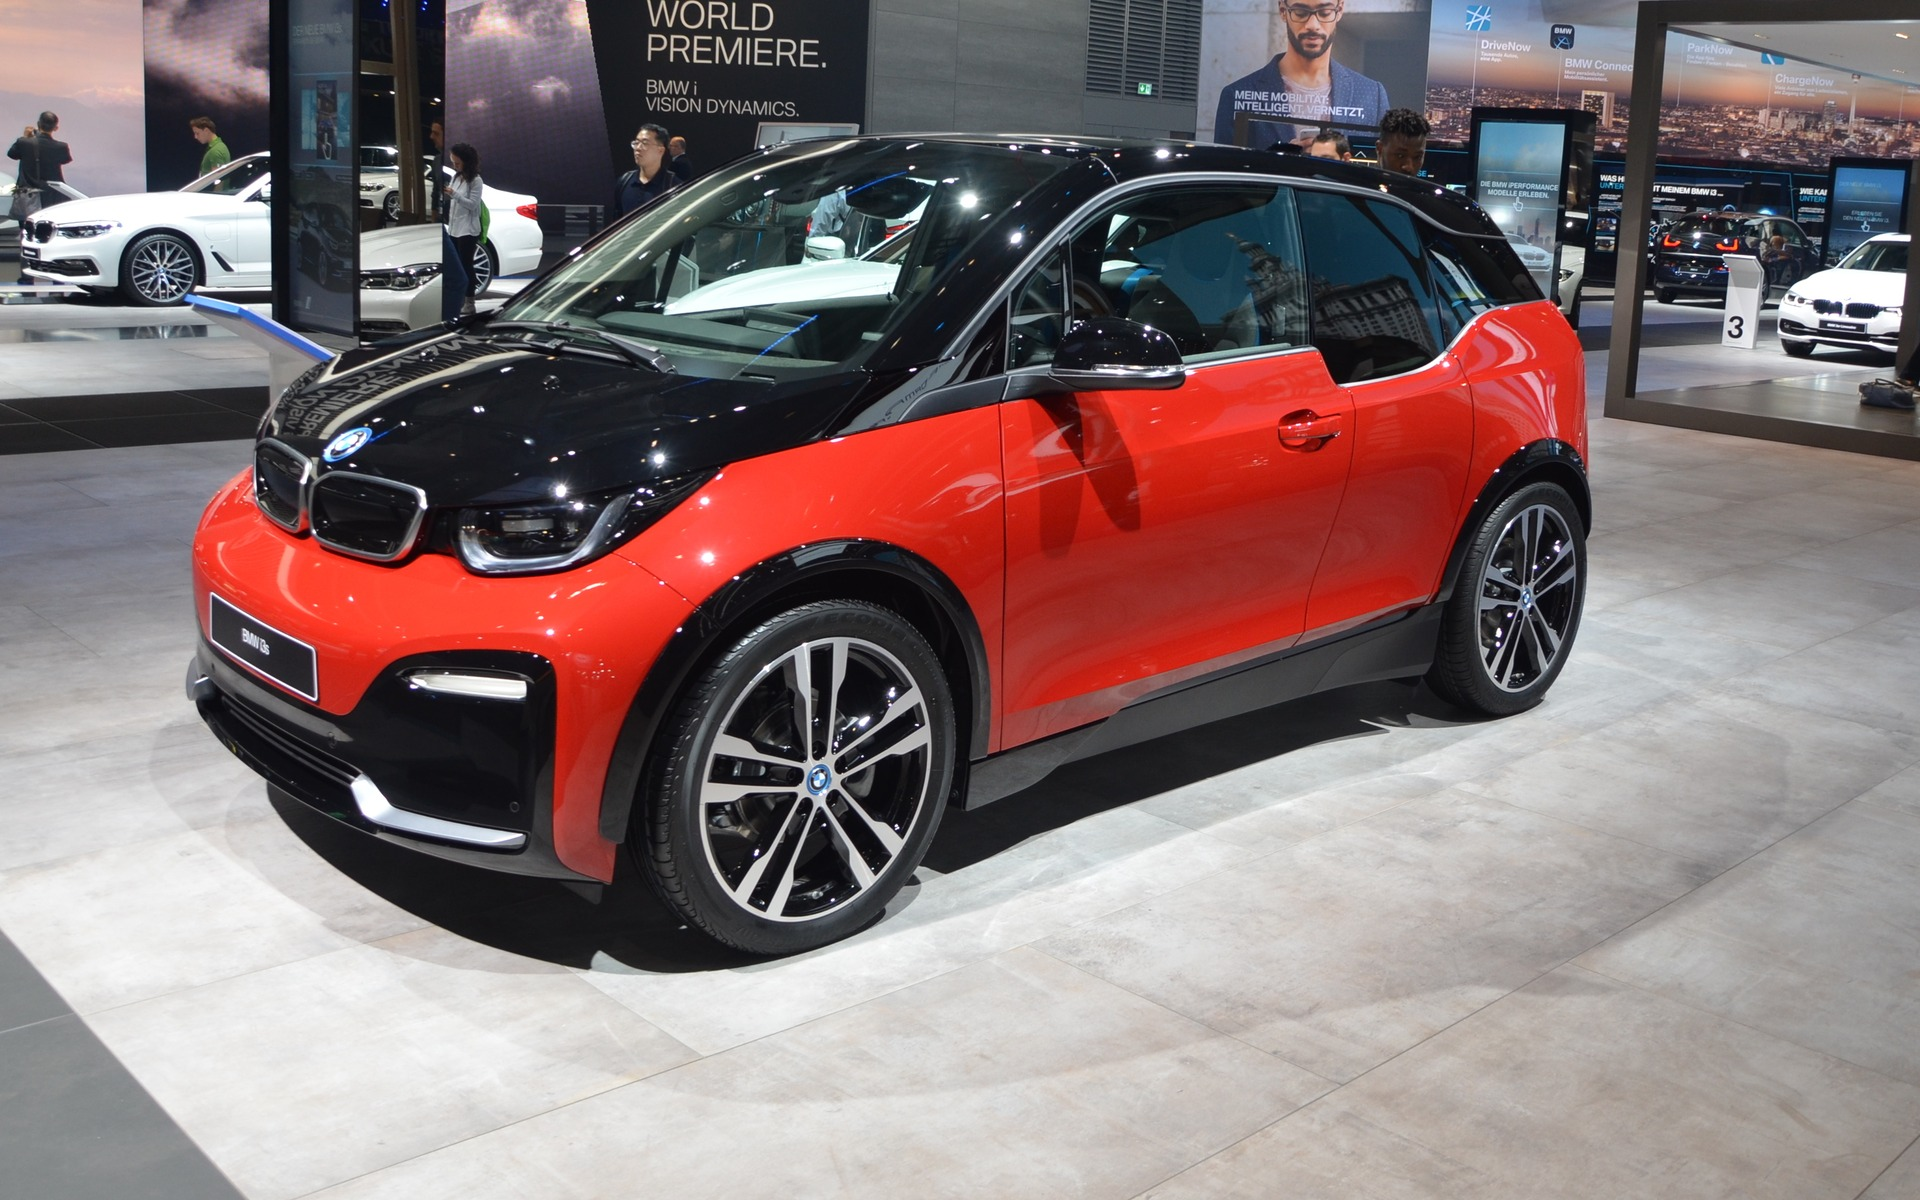 bmw i3 et i3s 2018 toujours aussi excentrique guide auto. Black Bedroom Furniture Sets. Home Design Ideas